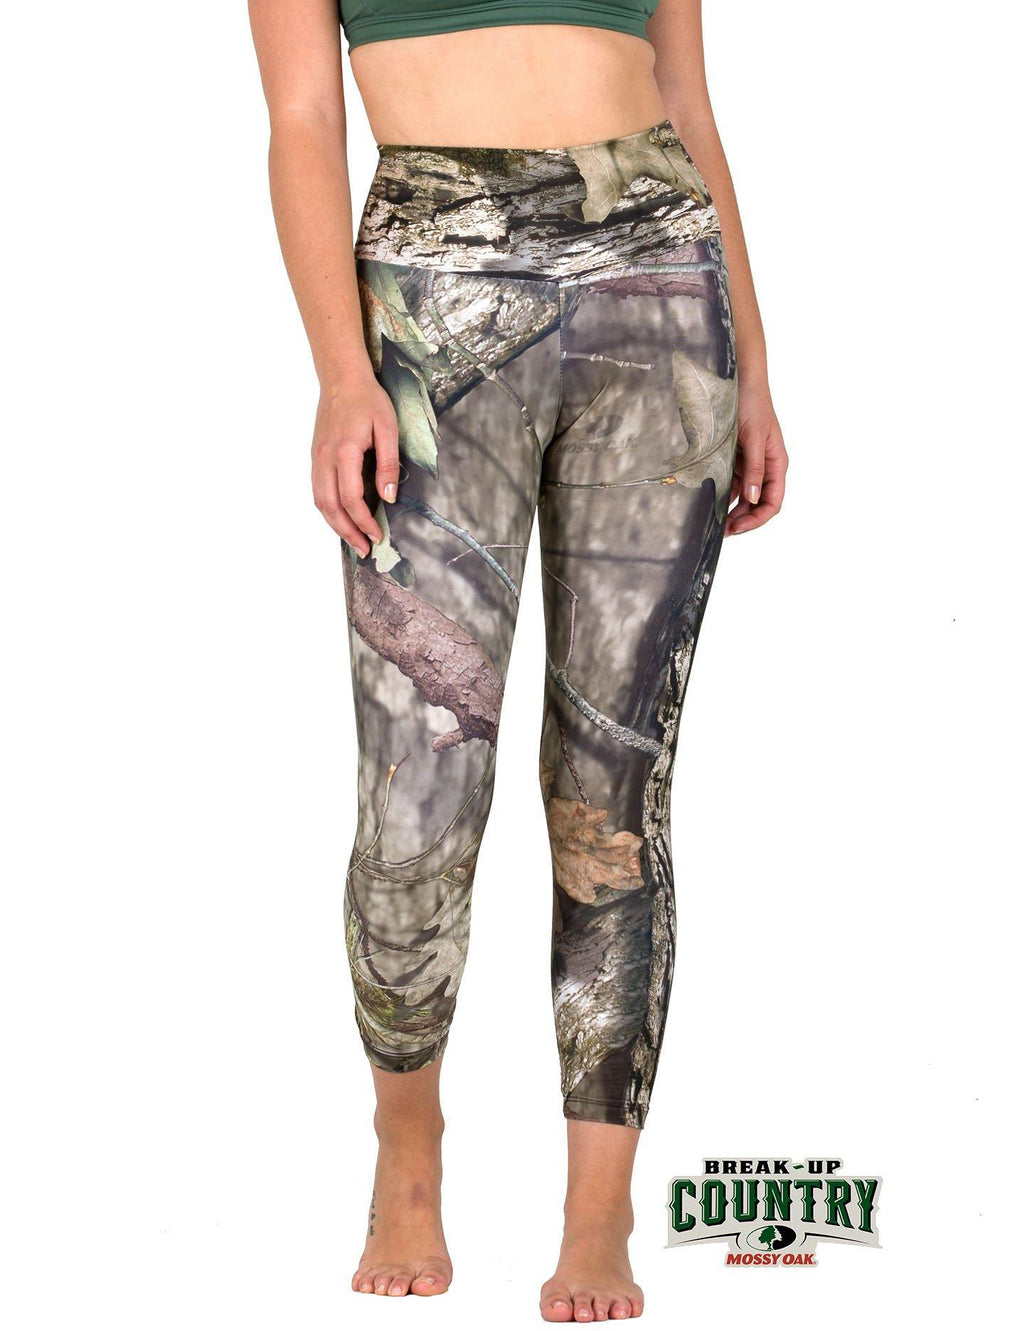 Apsara Leggings High Waist Cropped, Mossy Oak Break-Up Country